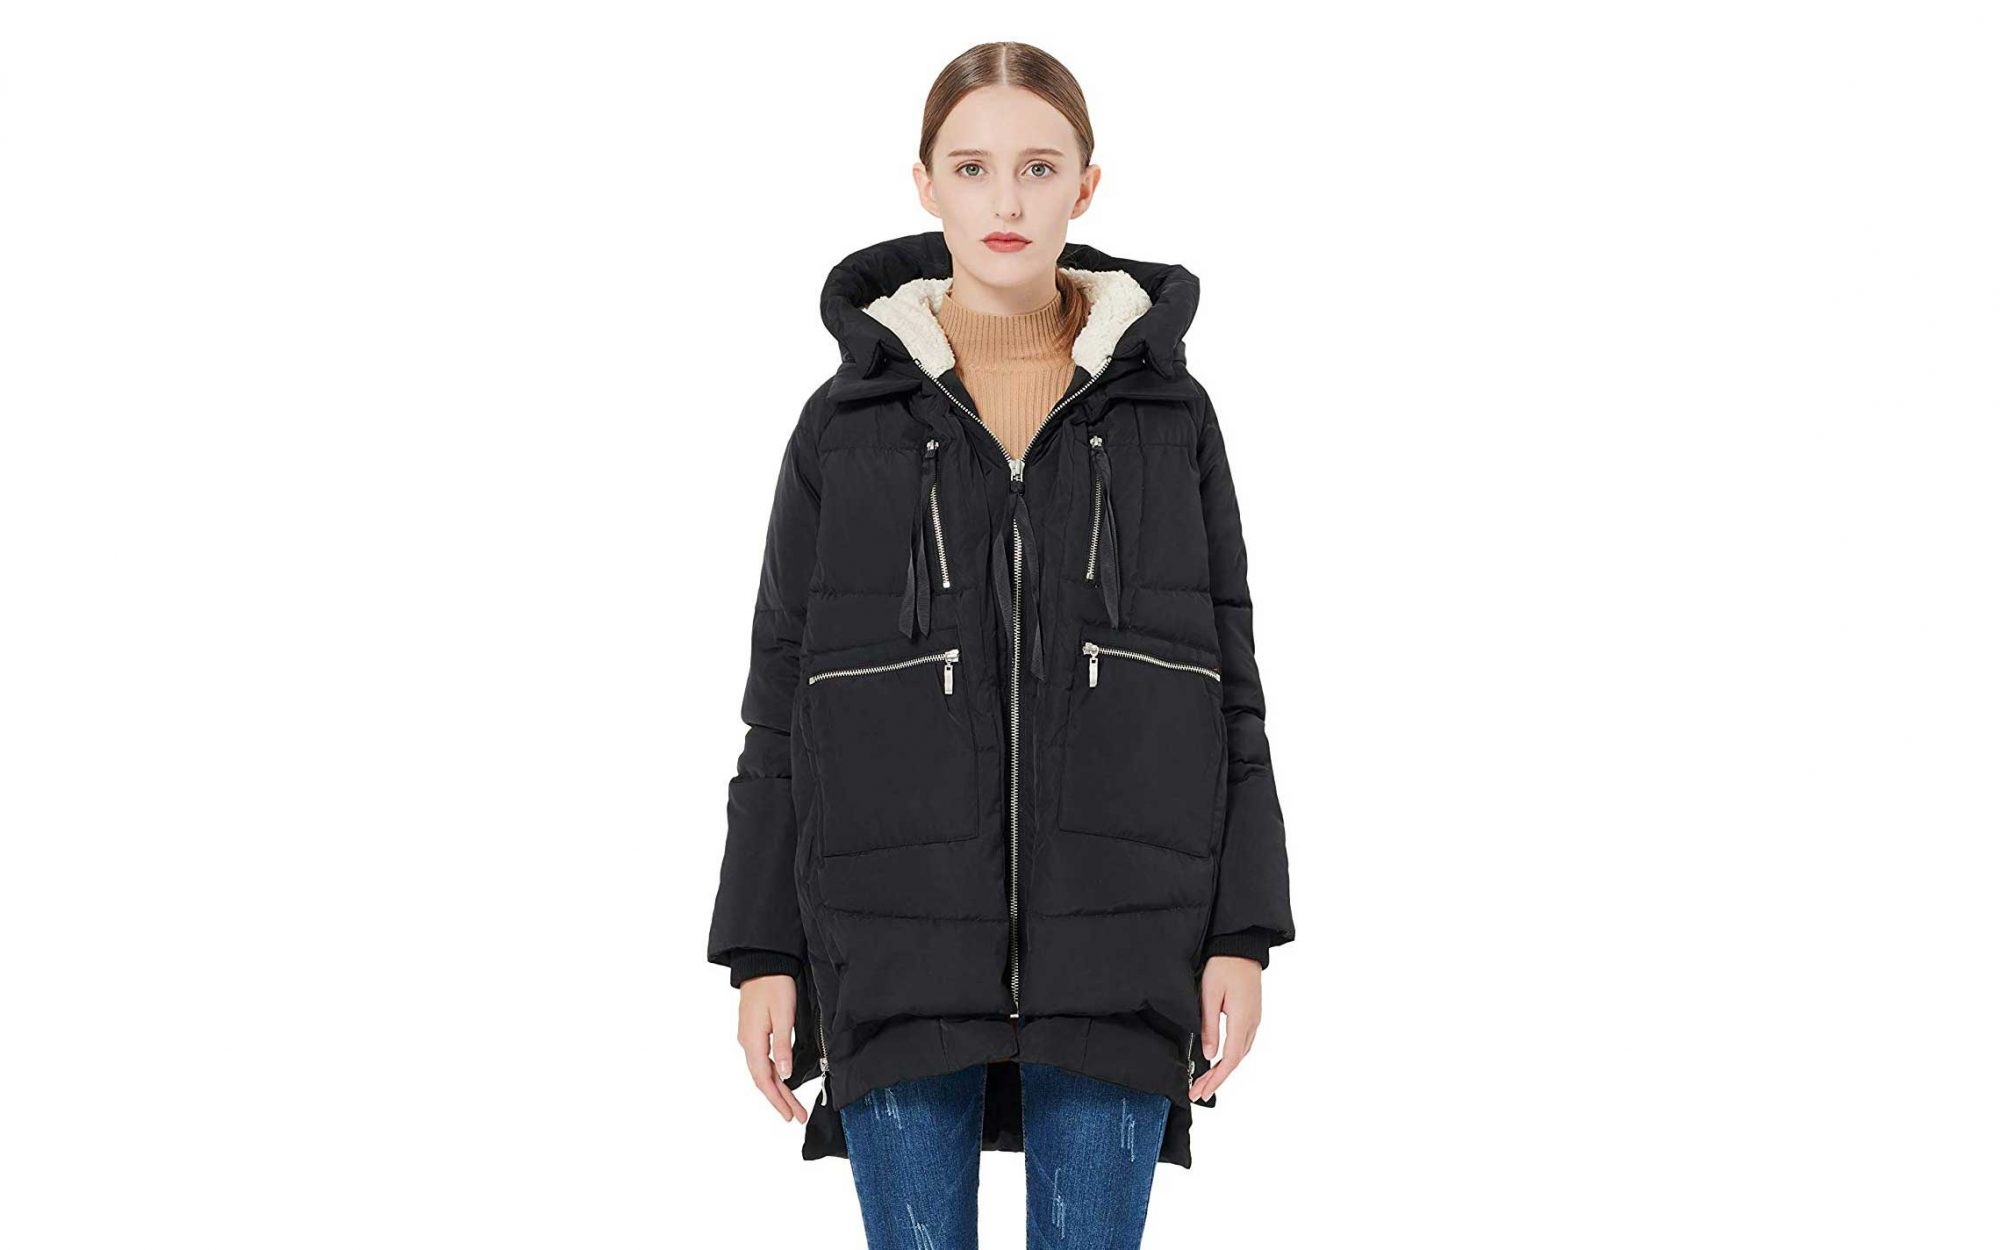 The famous 'Amazon coat' is ideal for winter travel – and it's finally on sale